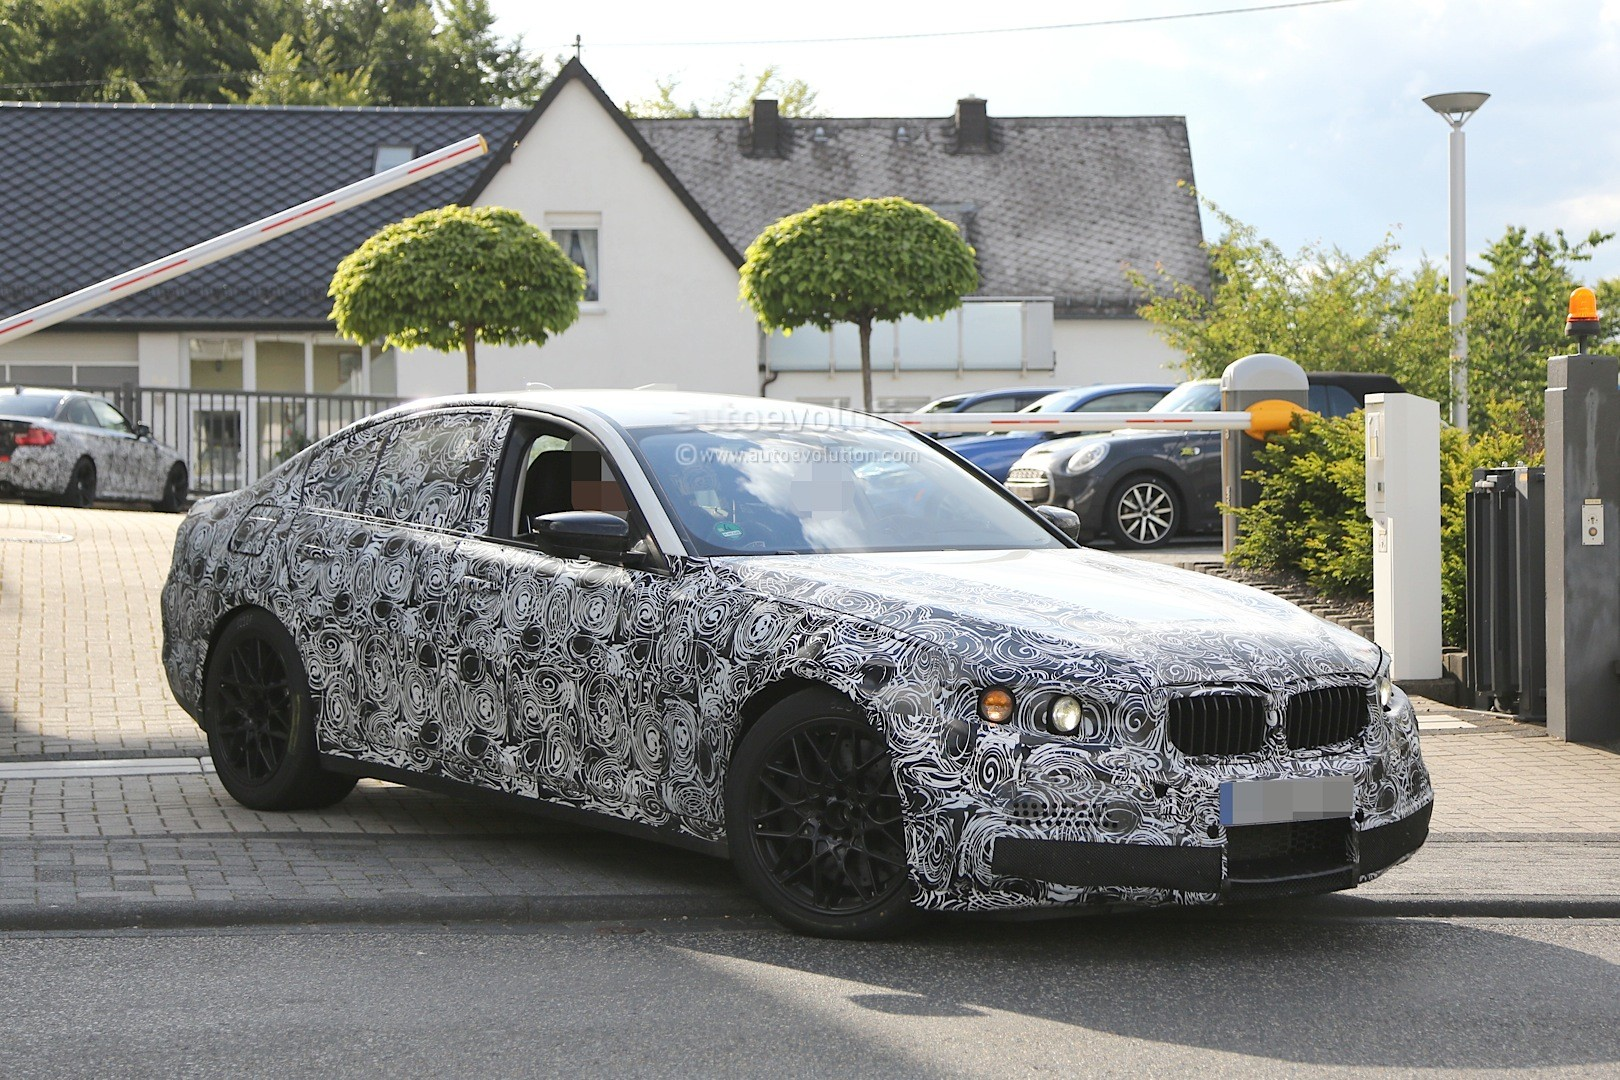 2019 BMW 1 Series photo - 4